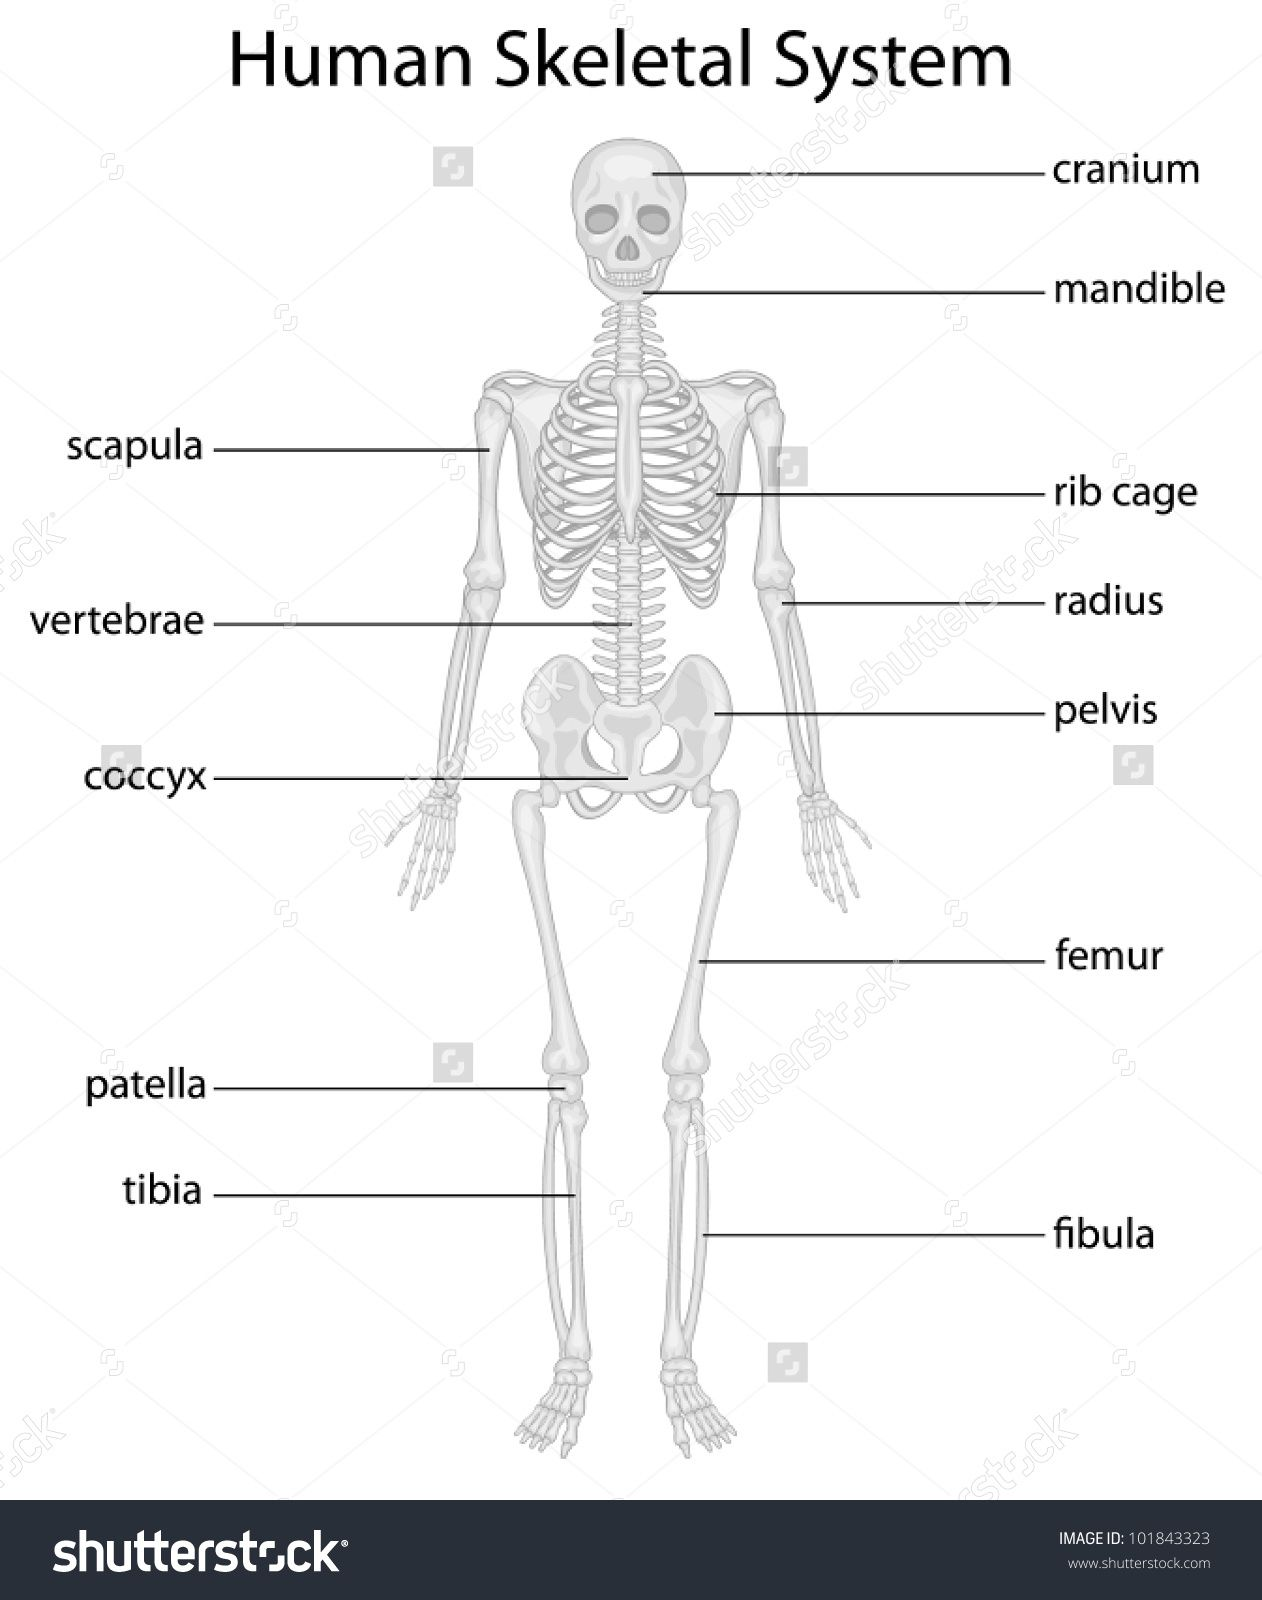 The Skeletal System Diagram Labeled The Skeletal System Diagram